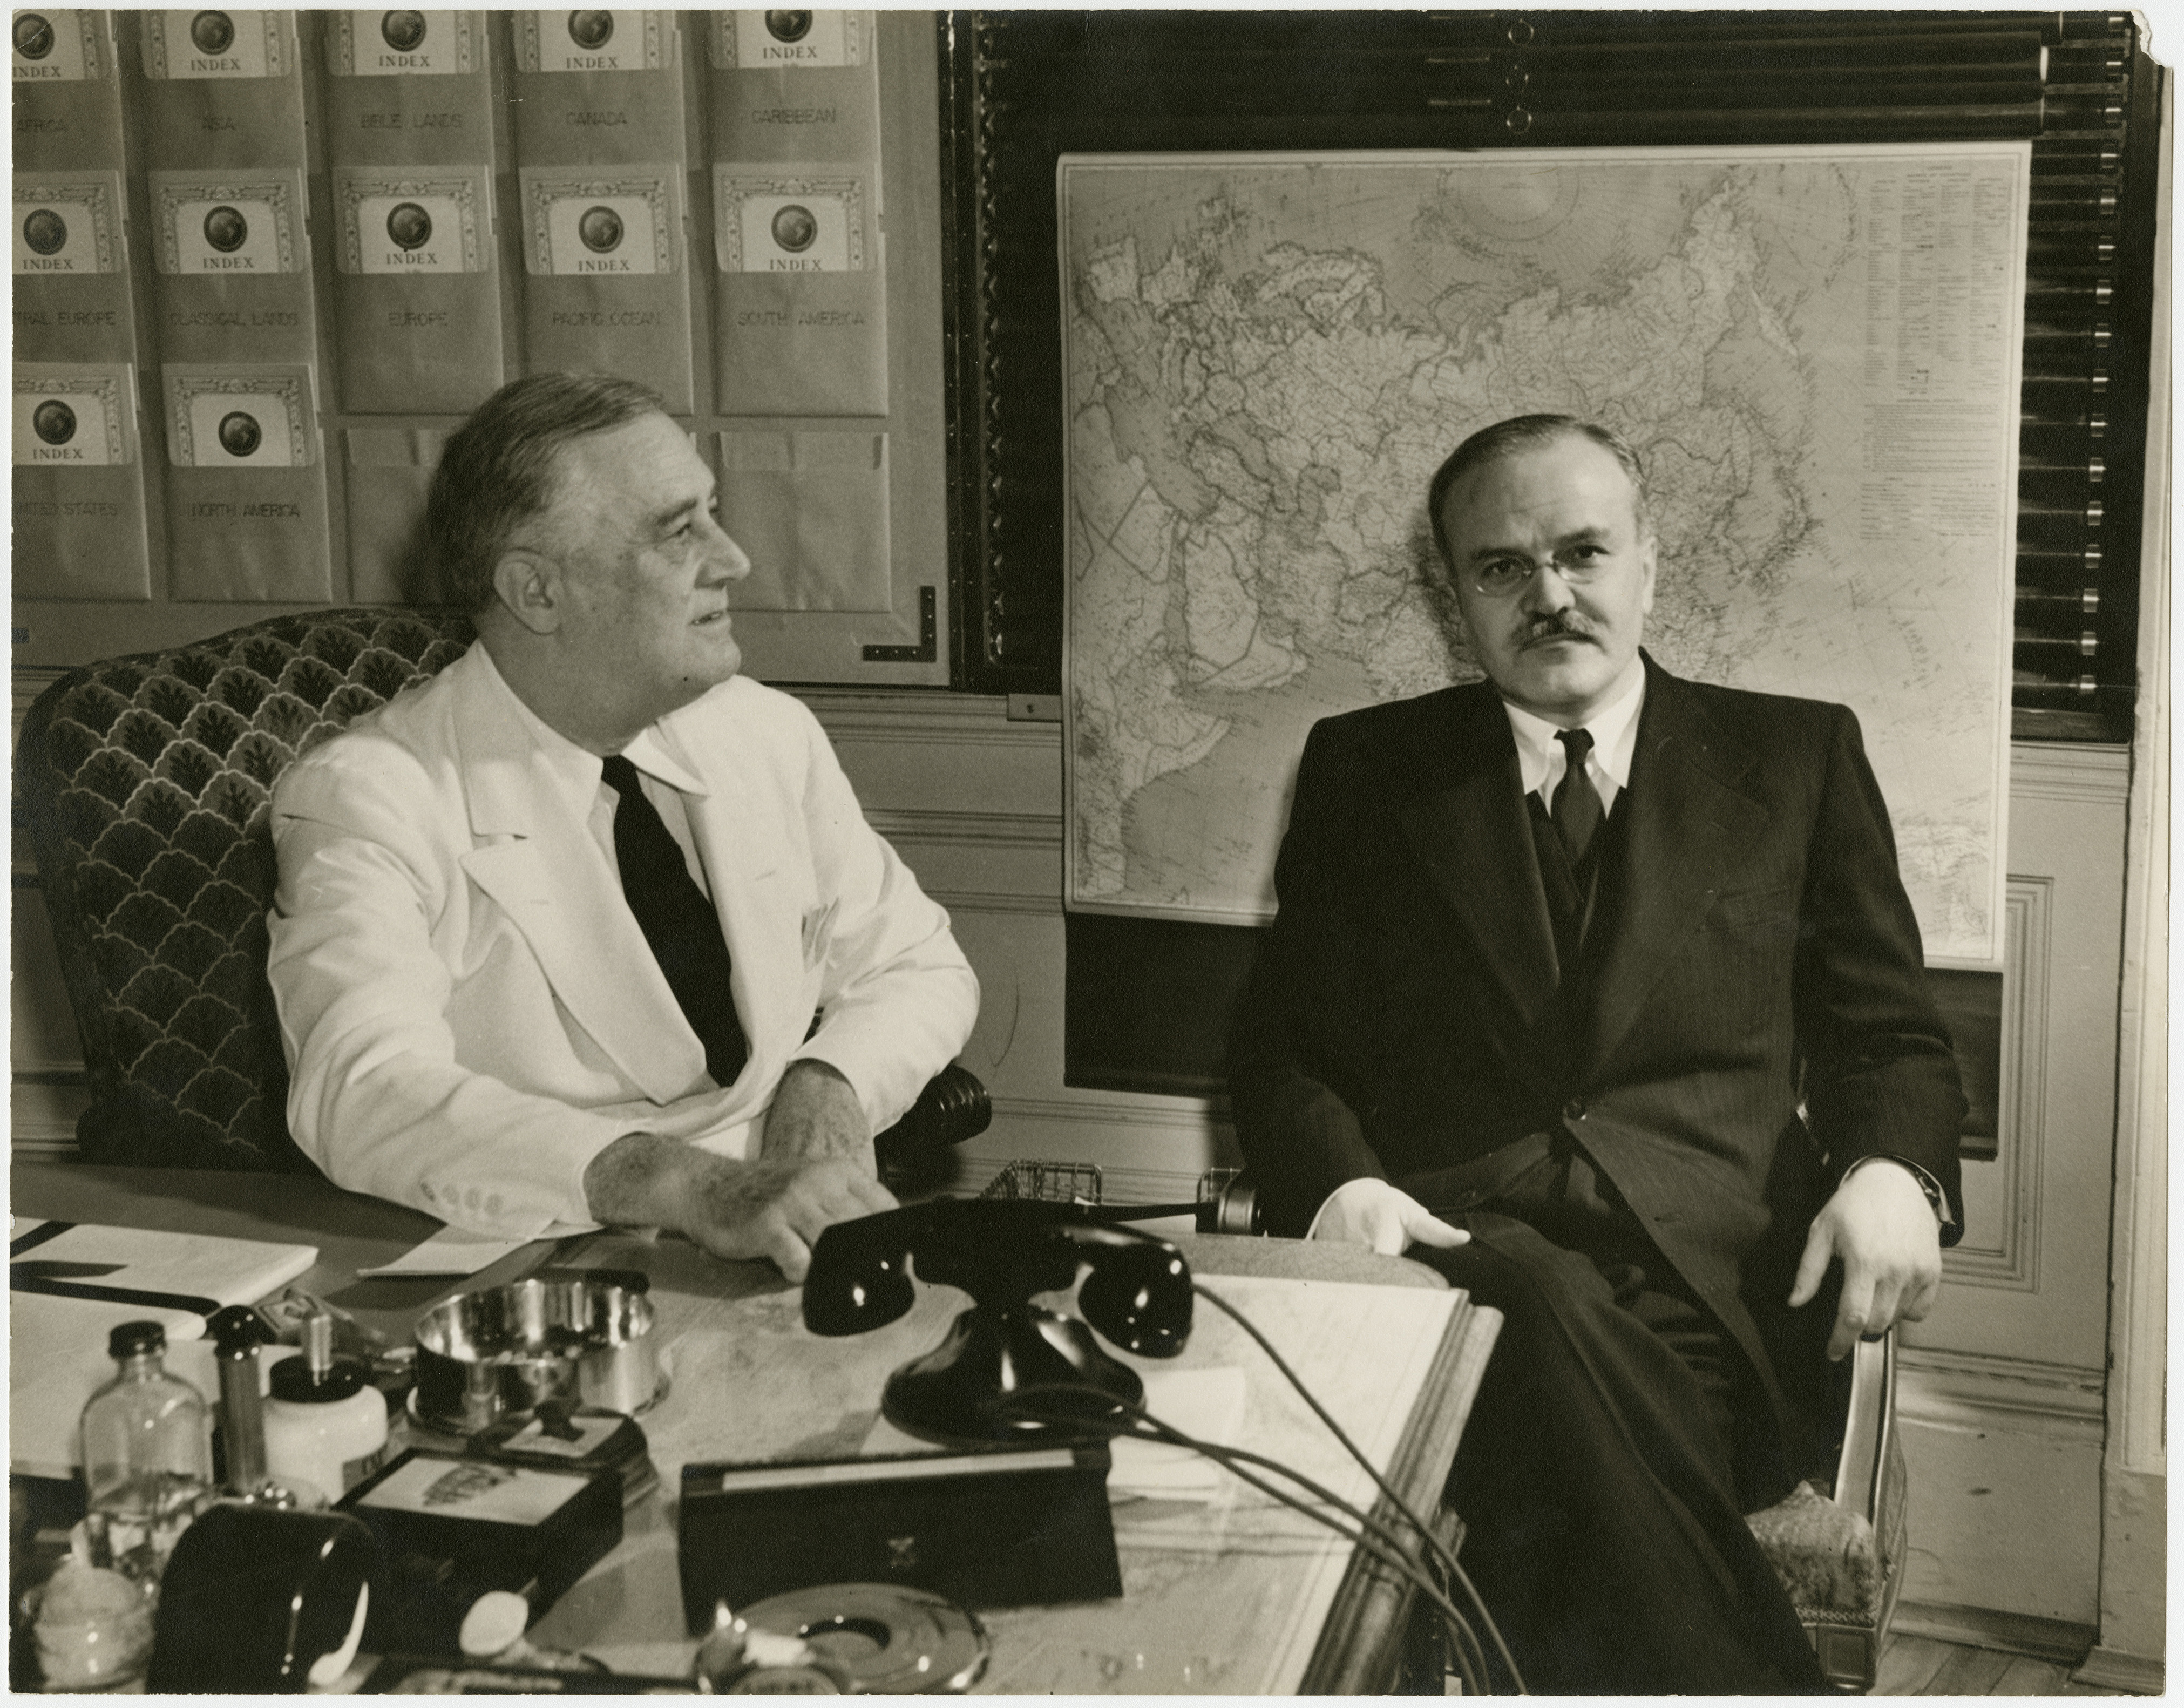 fdrs war message In his address to congress, franklin delano roosevelt (fdr) speaks urgently and fluently about our need to act, or more specifically, our need to declare war on japan.